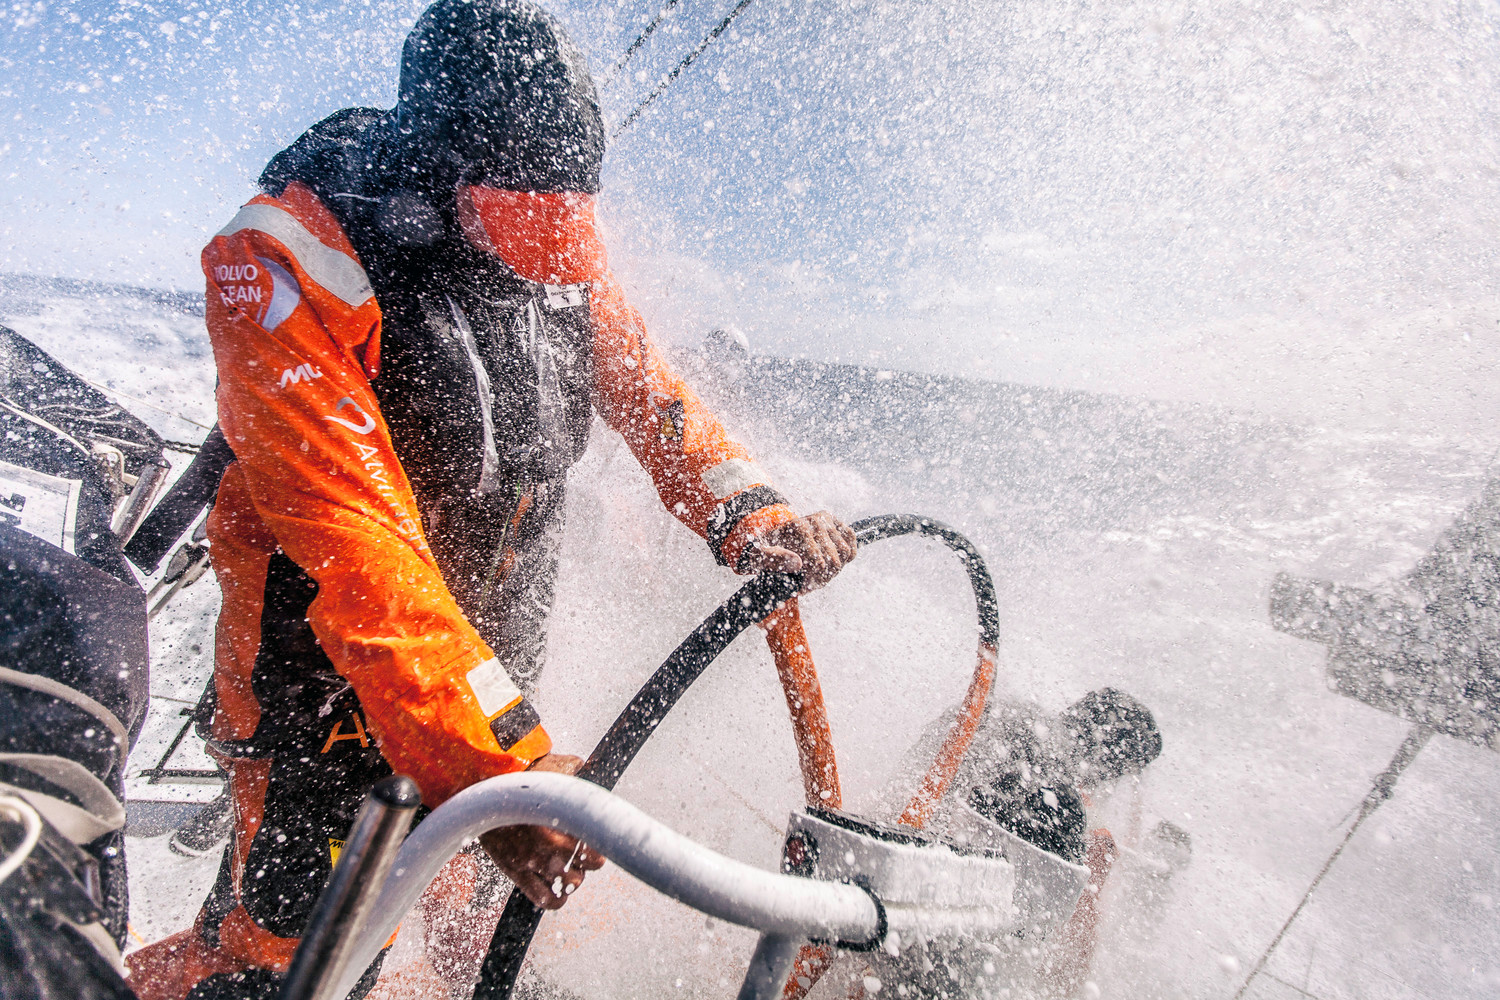 March 19, 2015. Leg 5 to Itajai onboard Team Alvimedica. Day 1. The still weakening Ex-Cylone Pam serves up a dosage of nastiness as the sea state continues to destabilize for the push to get east above it. Ryan Houston lowers his head to keep a wall of water from his eyes. Amory Ross / Team Alvimedica / Volvo Ocean Race